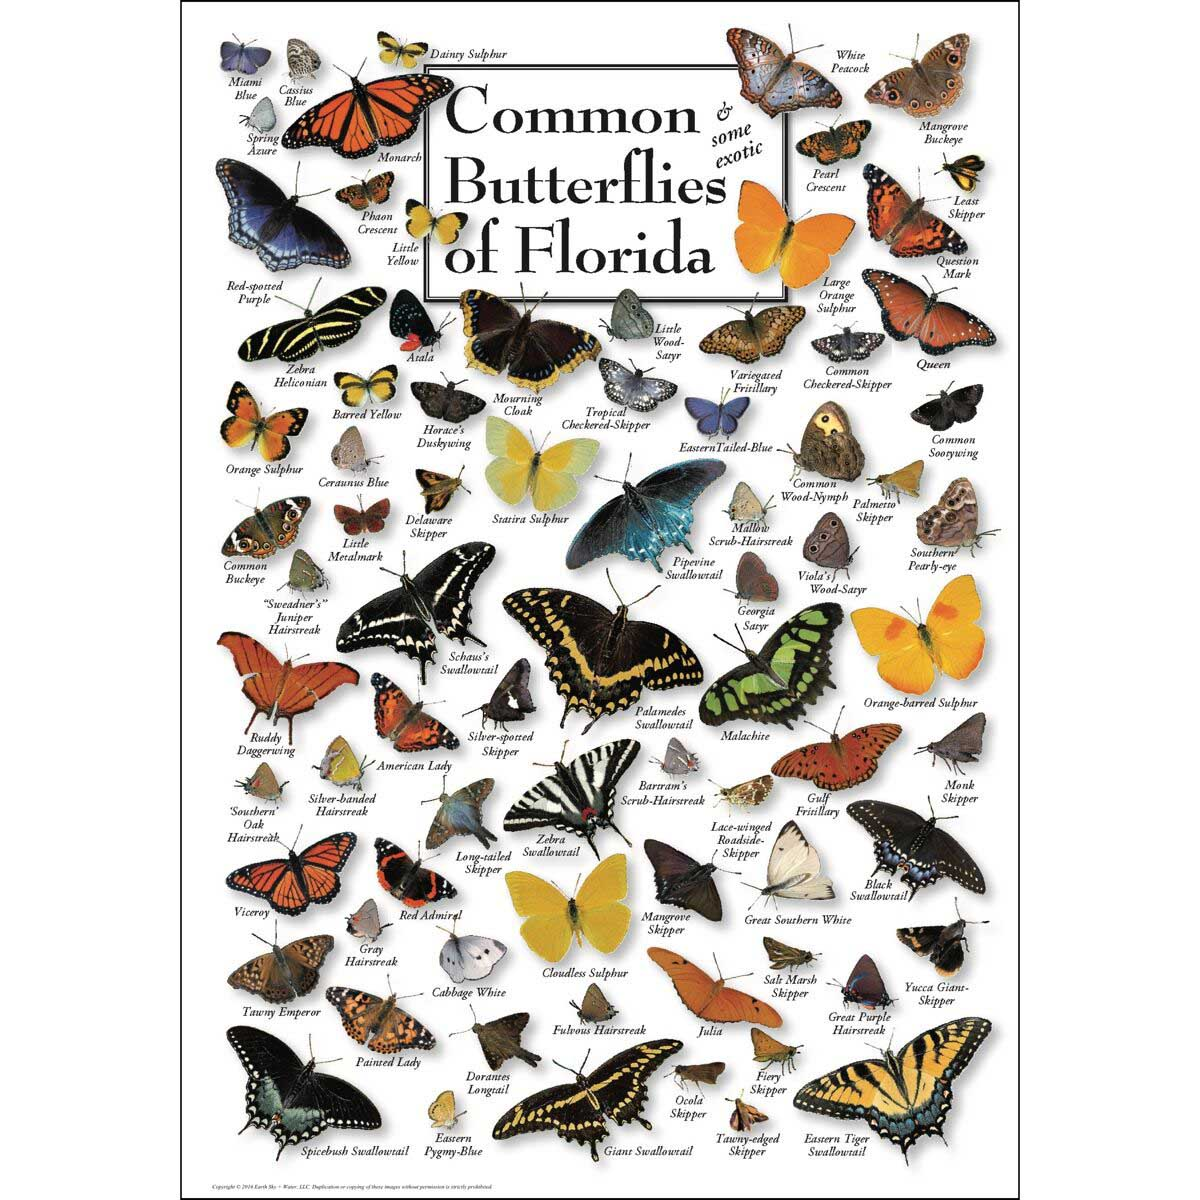 Butterflies of Florida Butterflies and Insects Jigsaw Puzzle